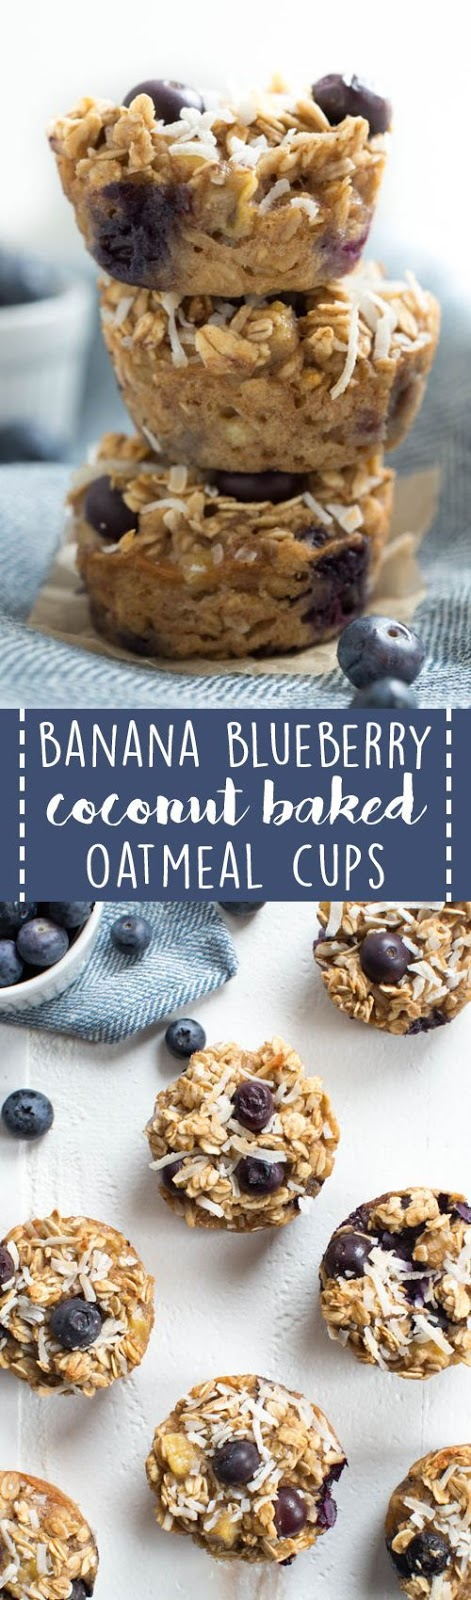 BANANA BLUEBERRY COCONUT BAKED OATMEAL CUPS